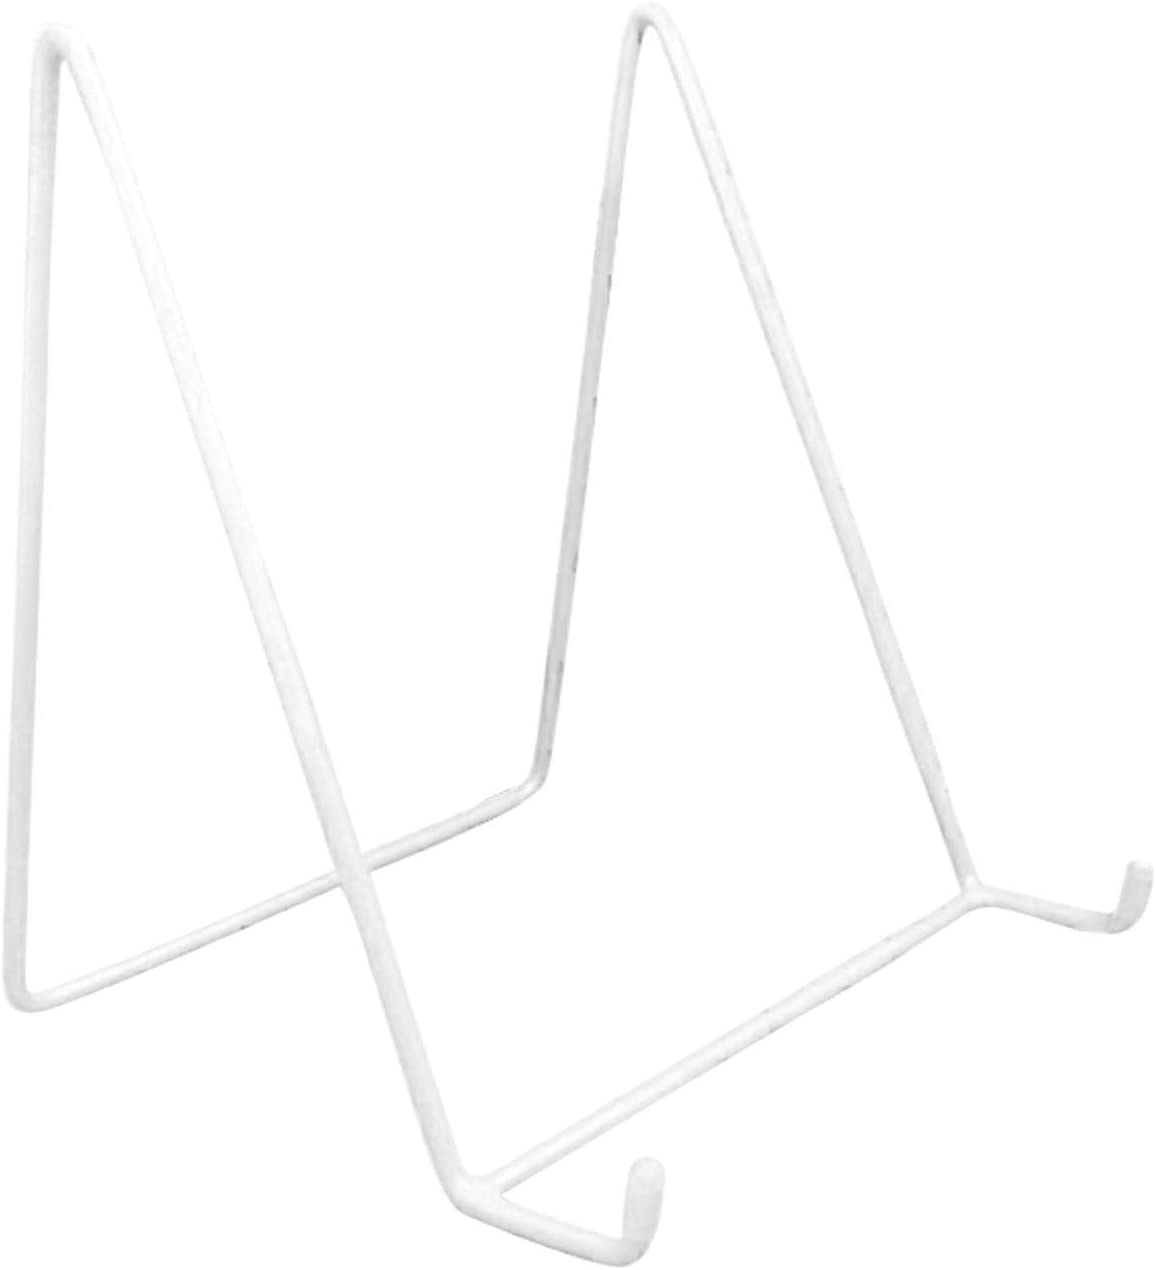 Display Stand,Vertical Desktop Iron Frame Stand Easel Plate Display Photo Holder Stand Scratch Proof Art Display for Photo Picture Decorative Display Stand